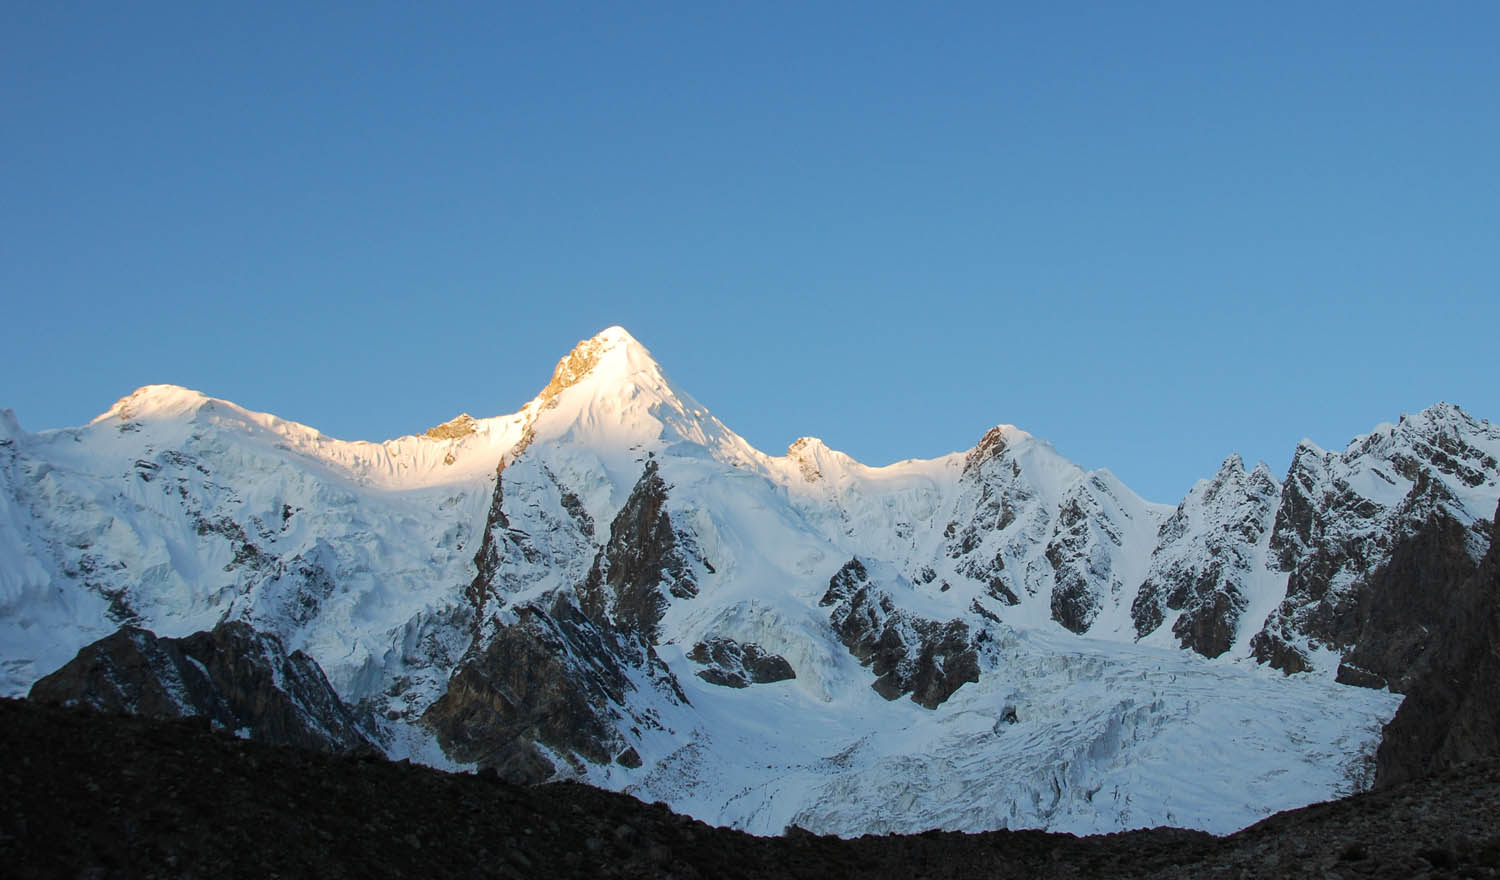 The east side of Muntin (ca 6,500m). Rustam Brakk is located farther along the ridgeline to the right.